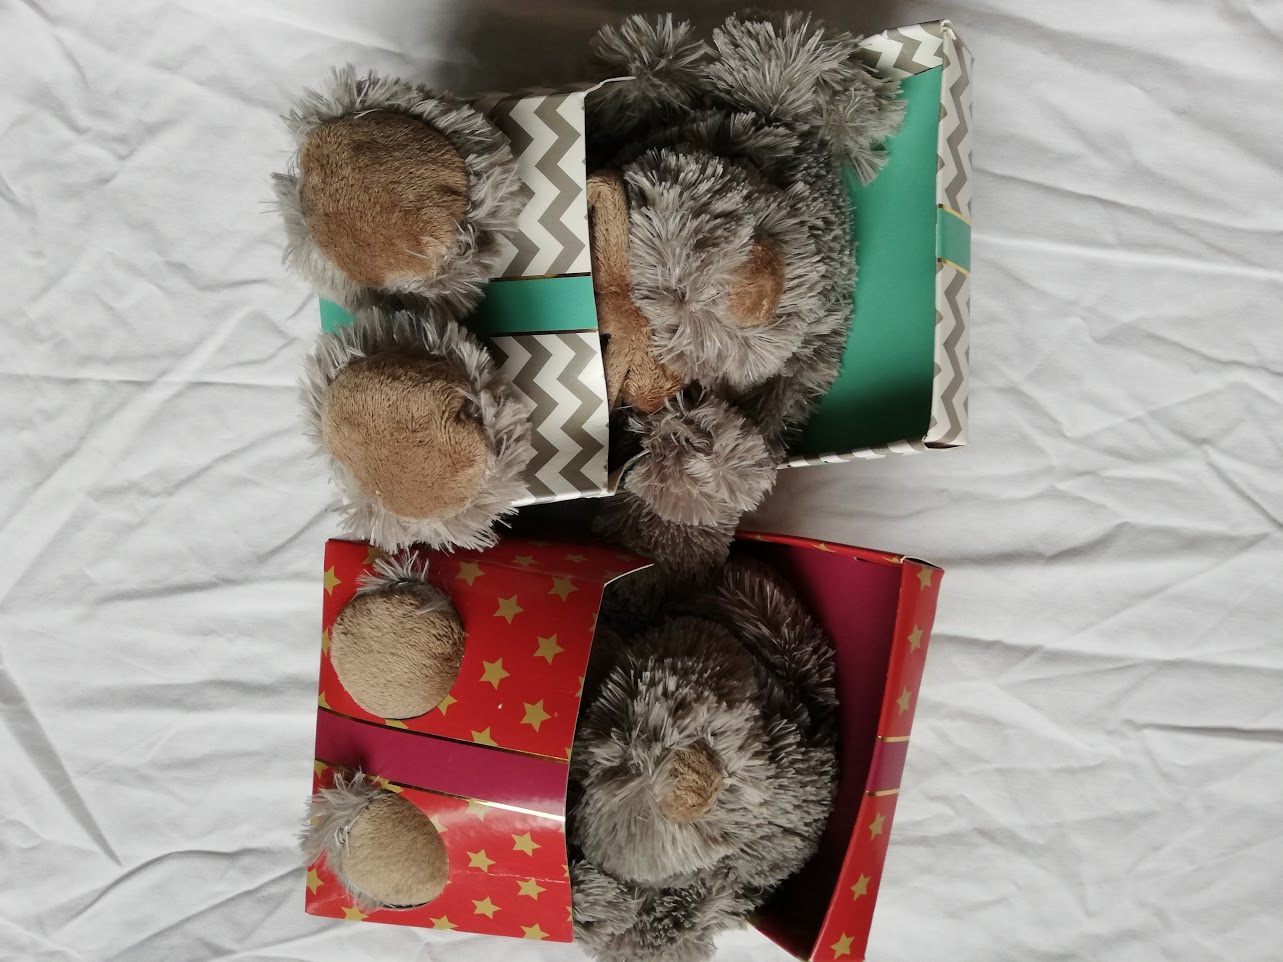 Christmas Gift - Teddy Dog in a box